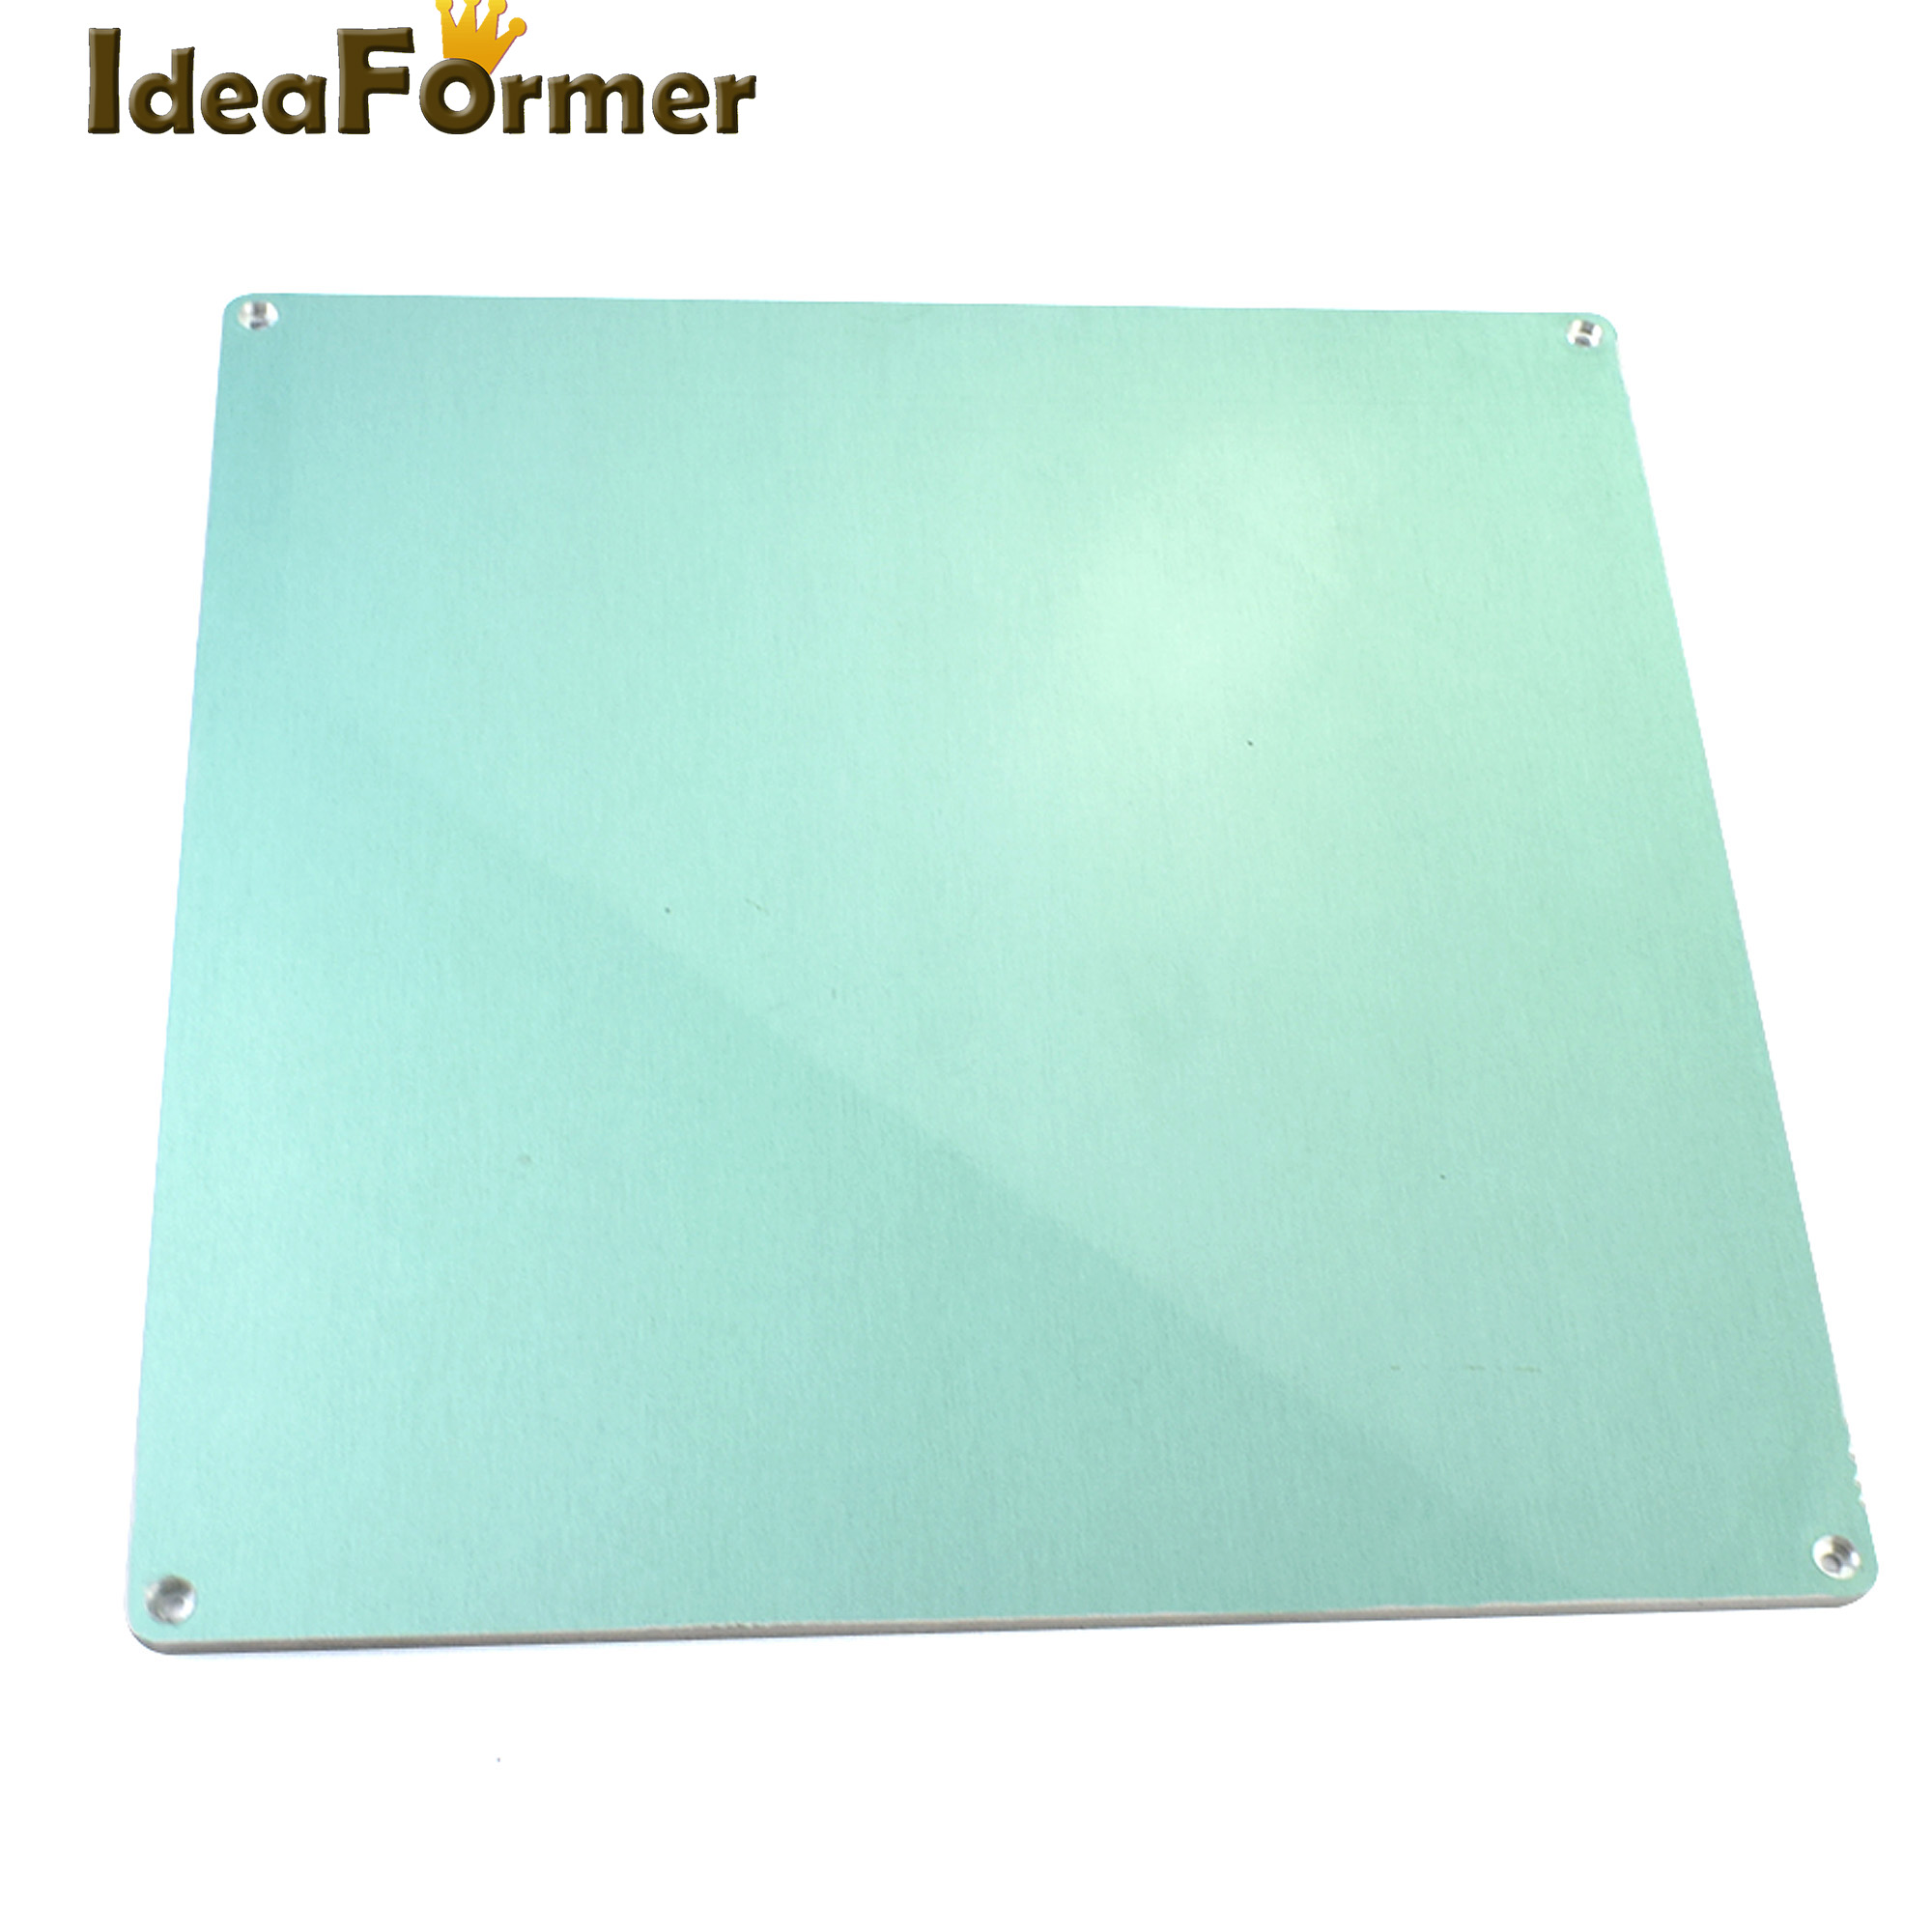 Improved MK3 Reprap Heatbed standard Aluminum rounded square PCB Plate 220*220*3mm Revamped Hot plate 3D Printer parts женское платье own brand s xxl dn489